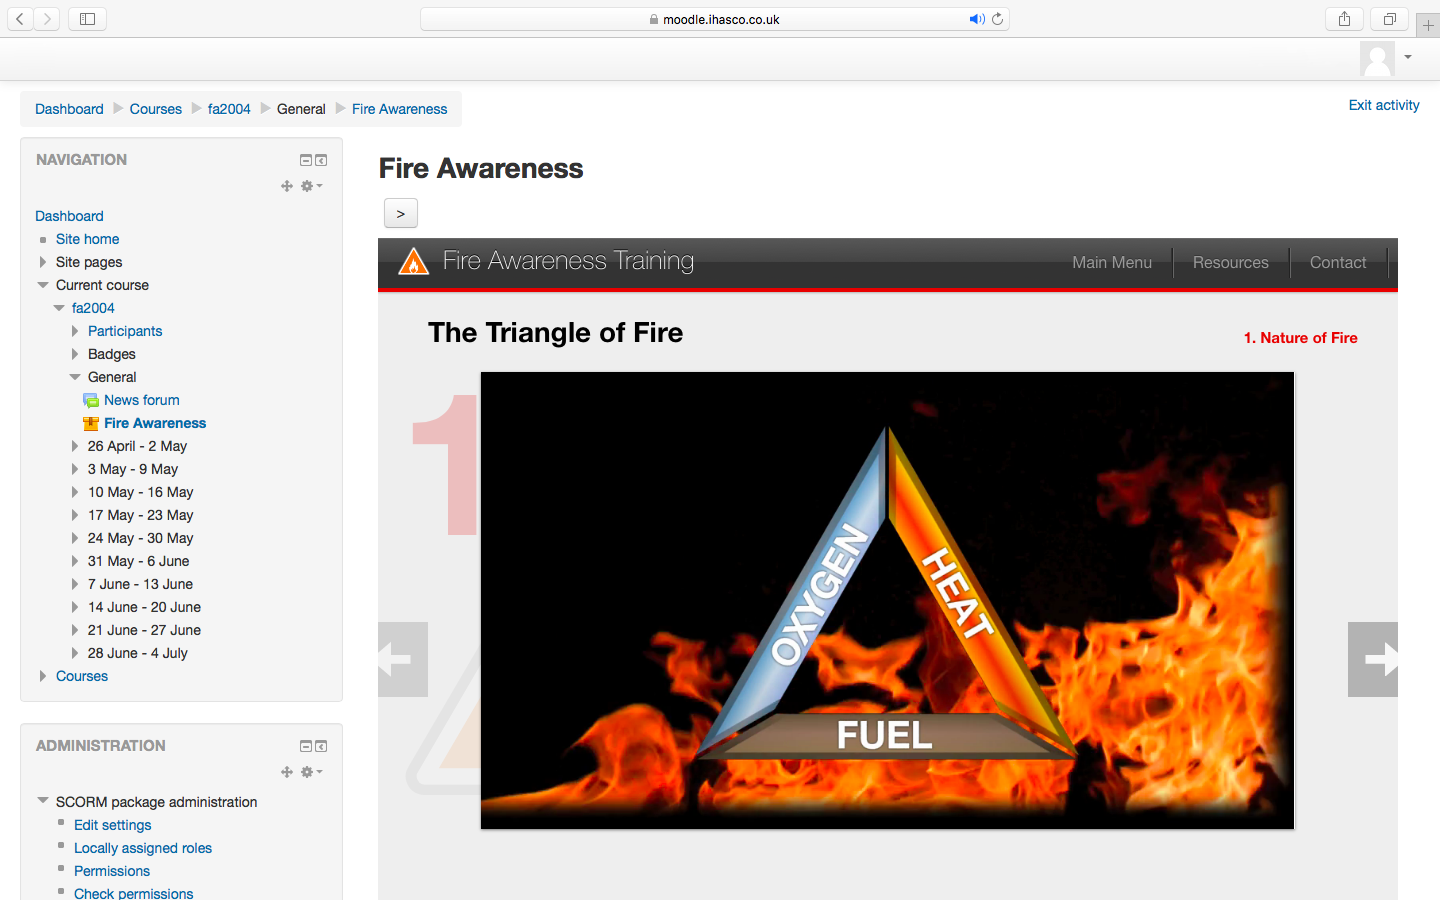 iHasco's Fire Awareness Course running inside Moodle's LMS